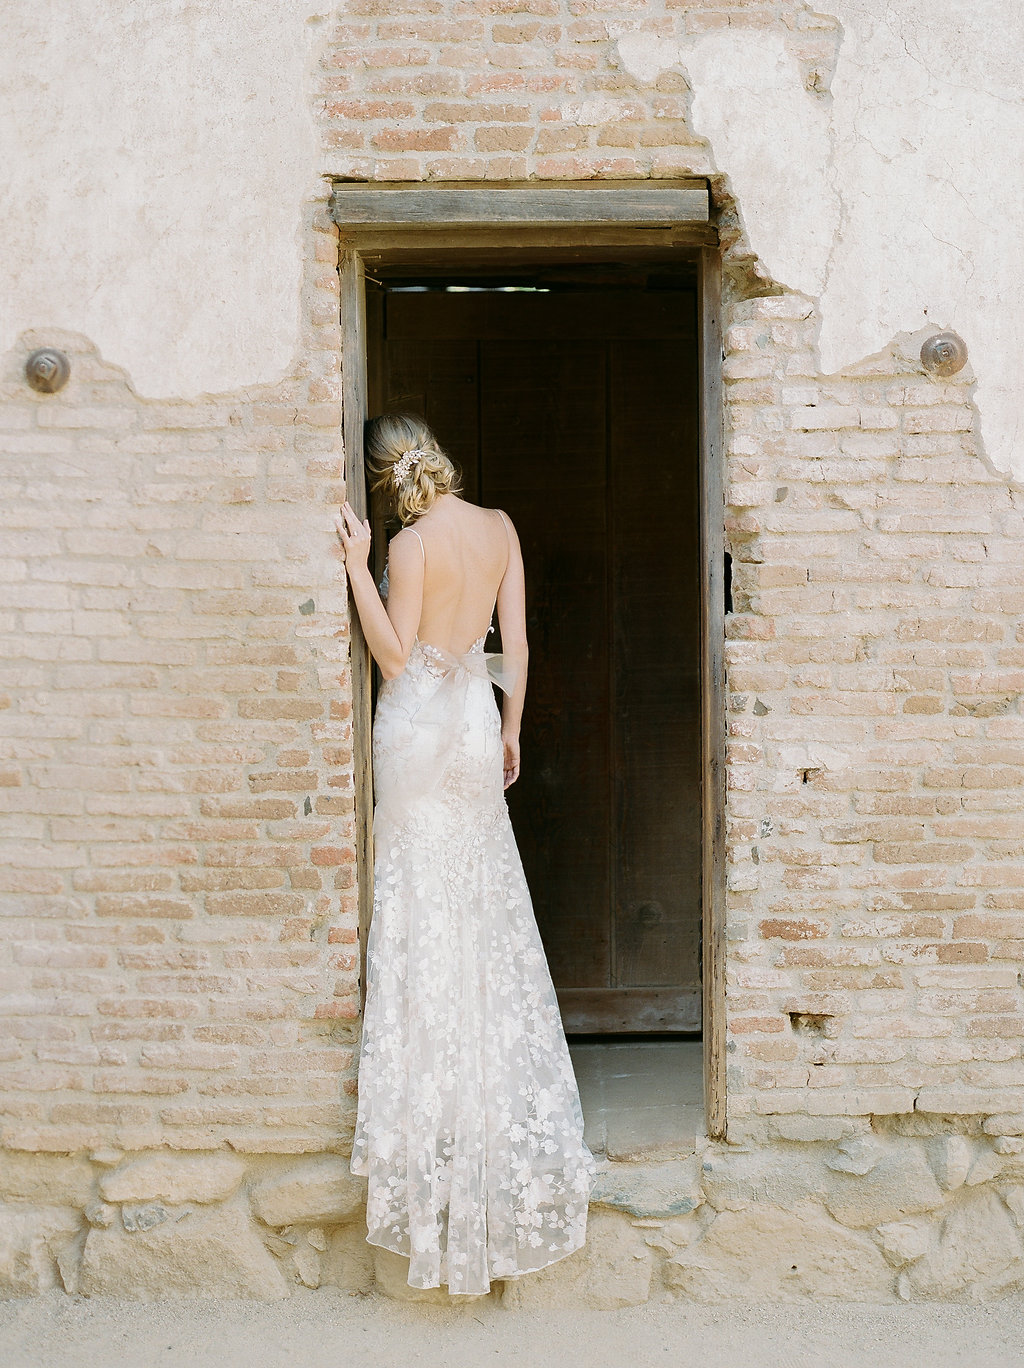 Spanish Mission Style Wedding Ideas Summer Flowers Finding Flora San Juan Capistrano European Venues California Claire Pettibone Wedding Dress Bridal Hair